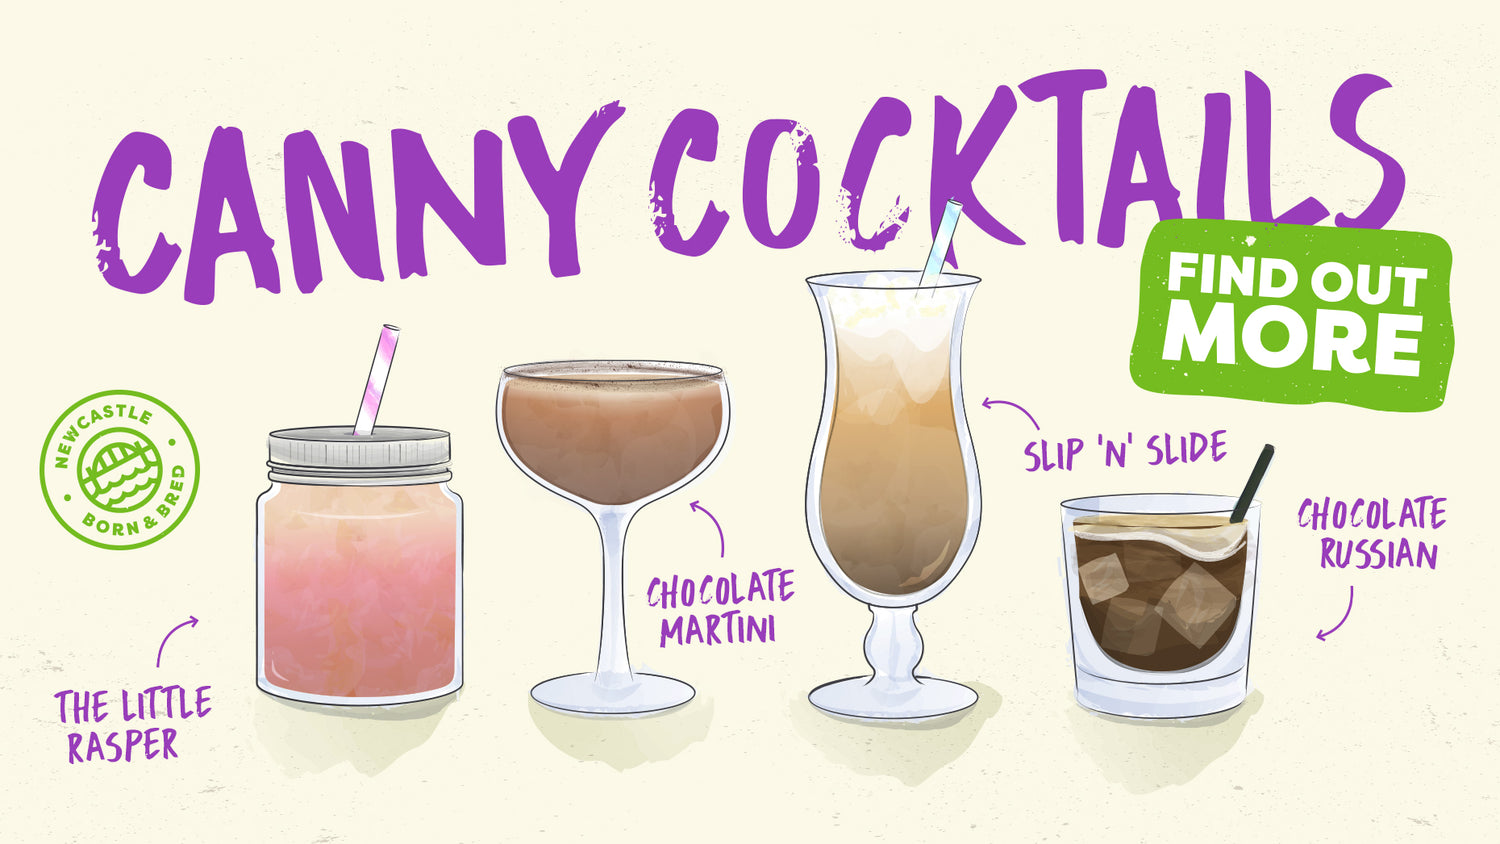 Canny Chocolate Milk Cocktail Recipes